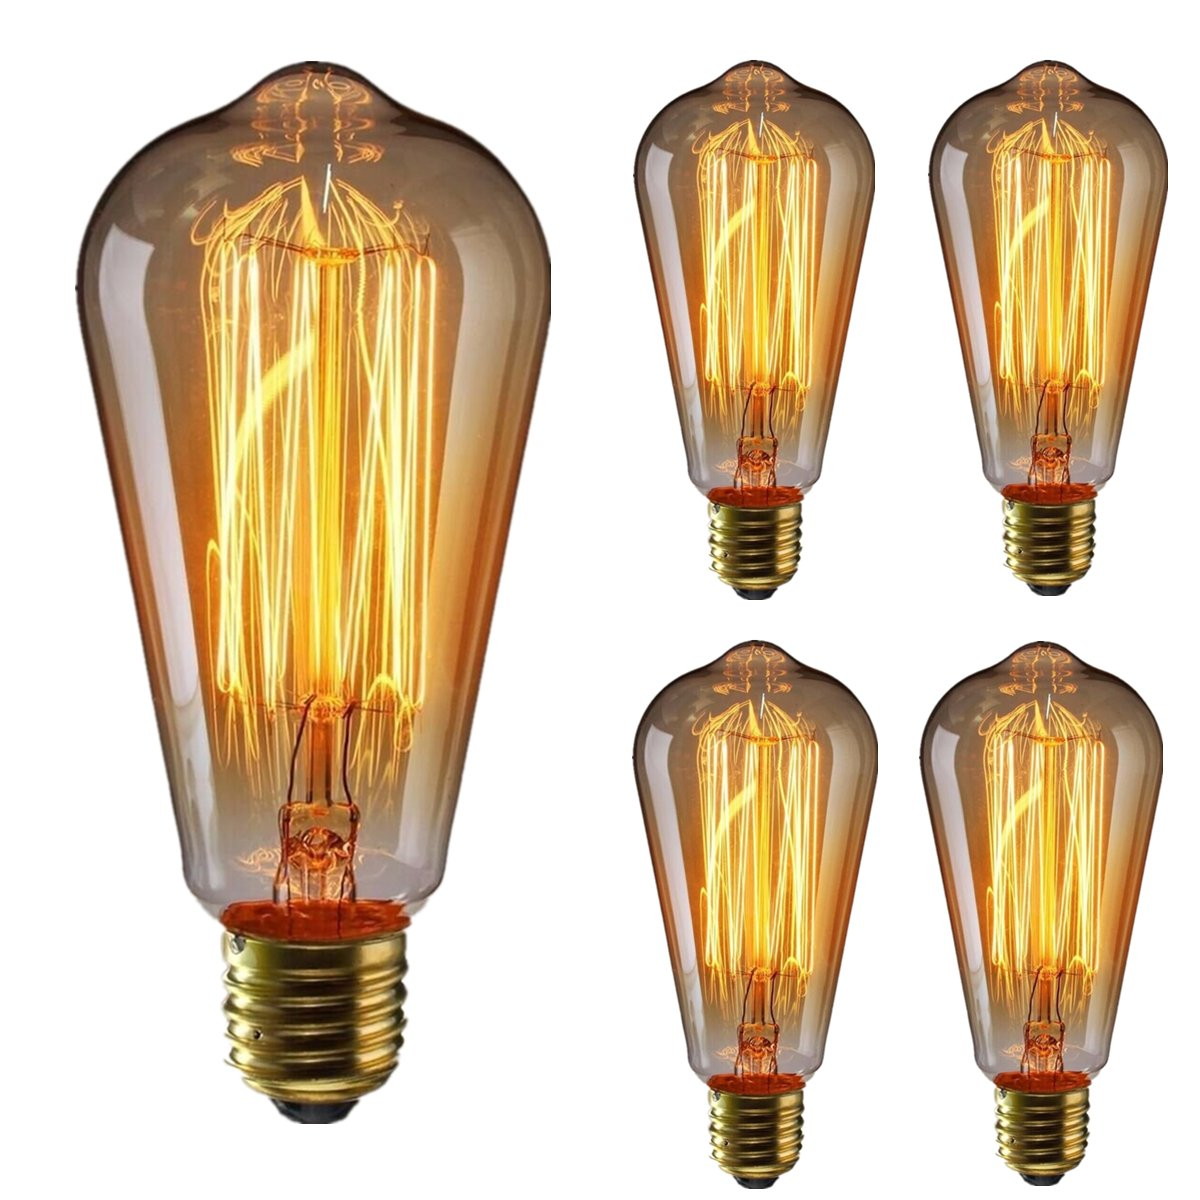 Vintage Edison Bulb KINGSO Dimmable 60W Edison Light Bulb Squirrel Cage Filament Incandescent Antique Light Bulb E26 Base ST64 110V - 4 Pack